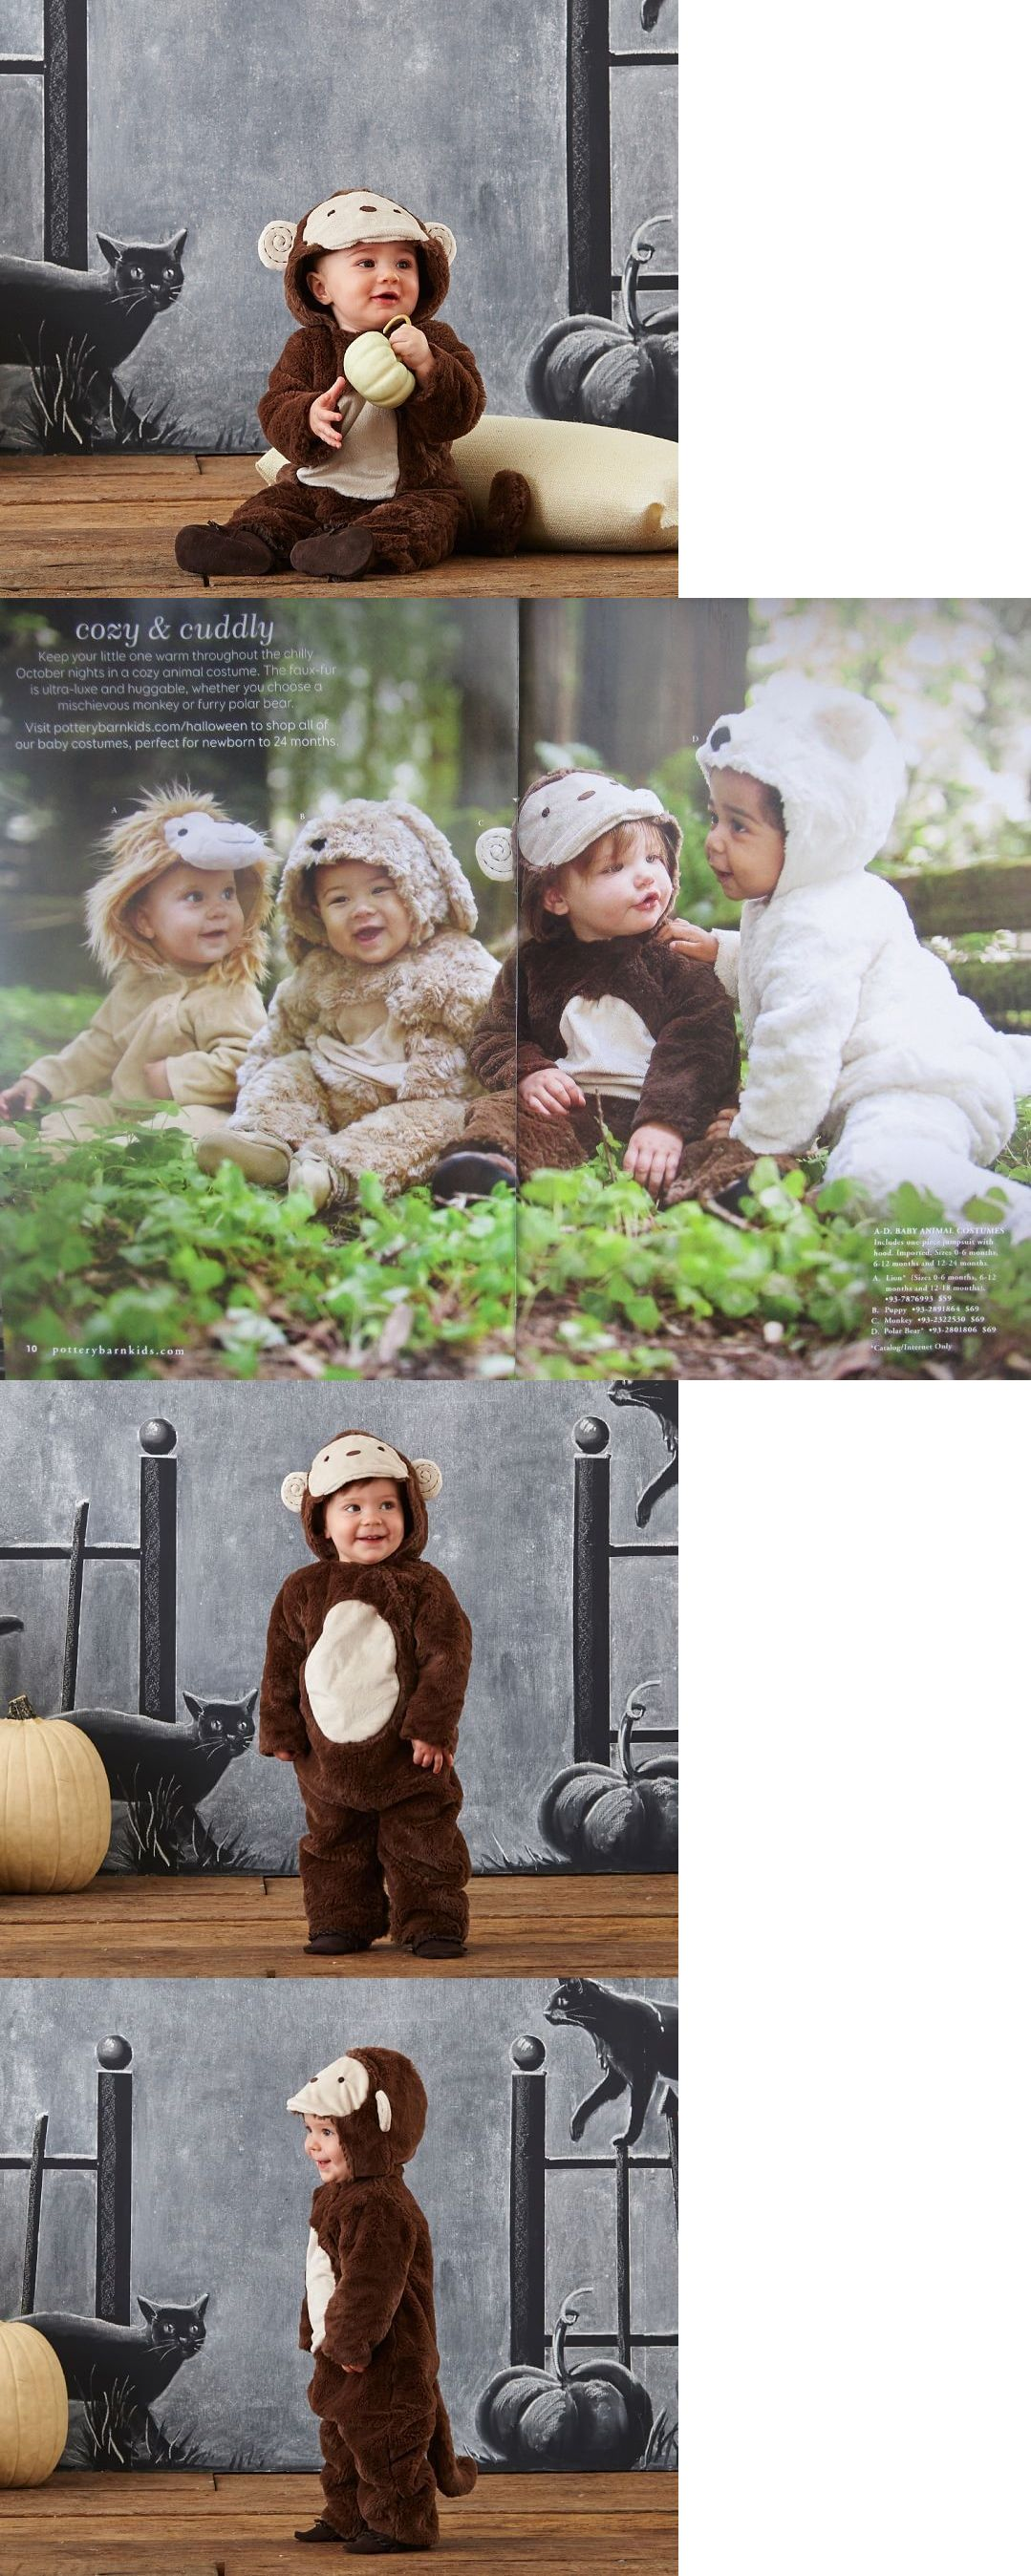 infants and toddlers 90635: $69 new pottery barn kids baby monkey